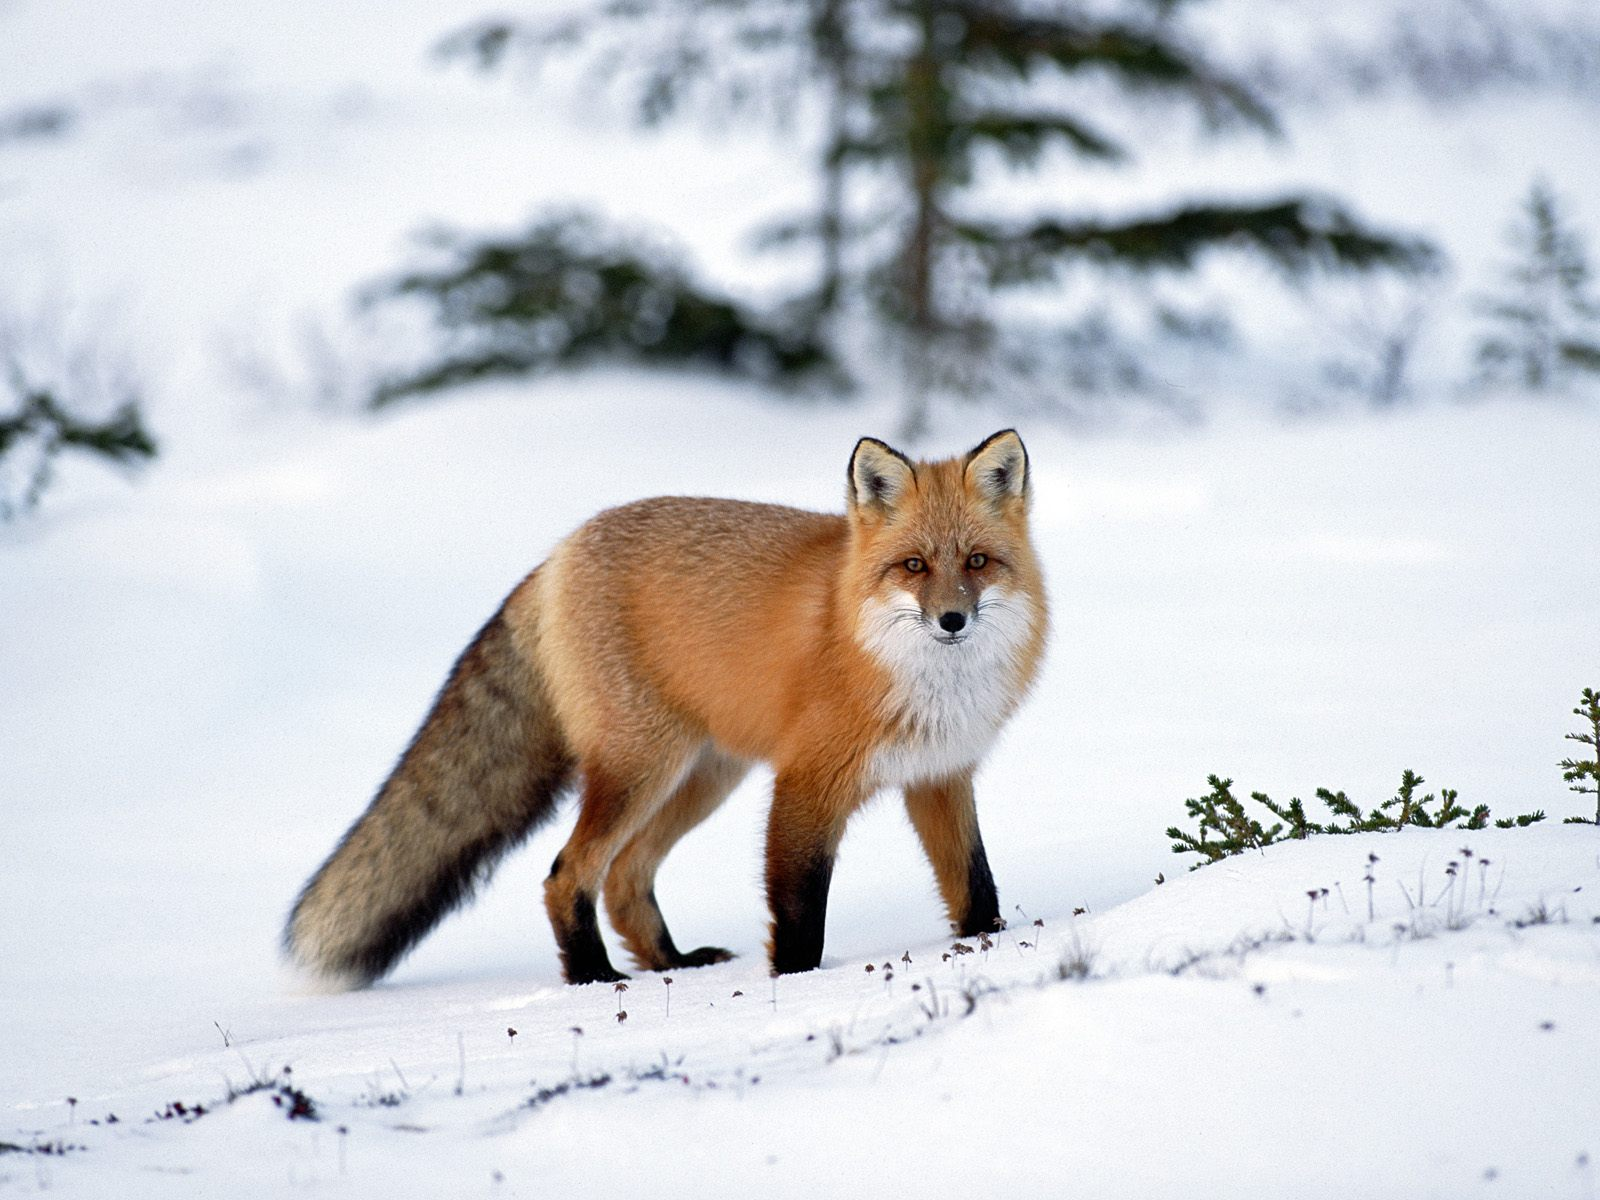 Animals Fox Orange Wallpaper Animal Wallpapers: Pgcps Mess - Reform Sasscer Without Delay